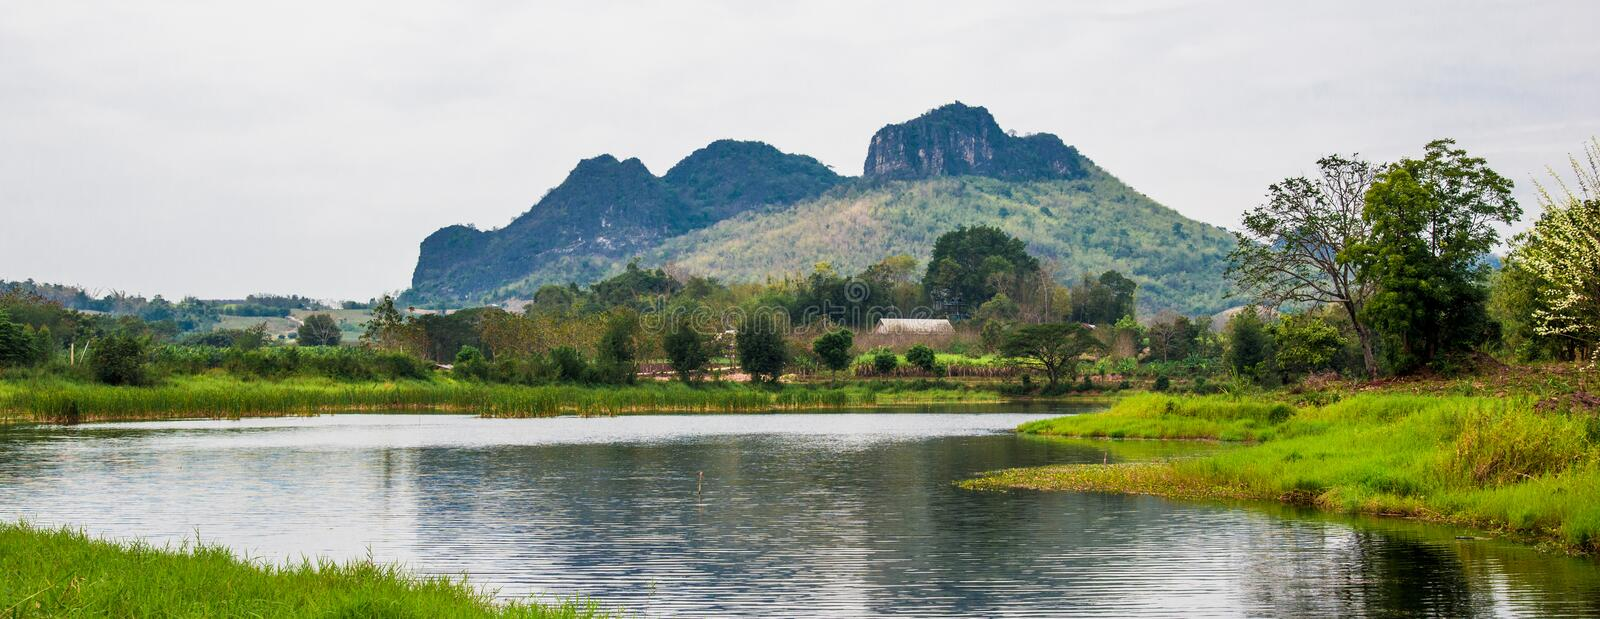 Canal Nature Reserve. Mountain background stock image